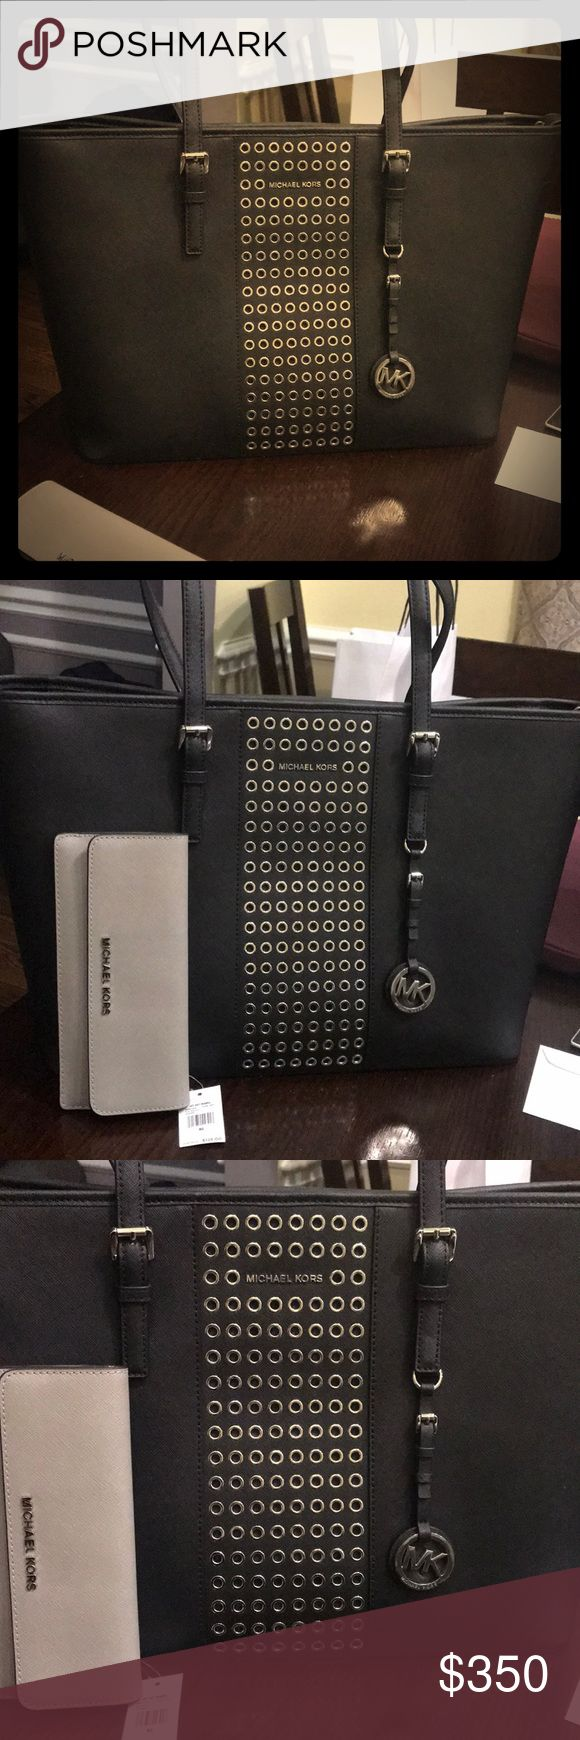 Large Michael Kors Tote With Pearl Grey Wallet New Large Black and Silver Tote Bag with Wallet Brand New Never Used Gorgeous - Selling this as a set Wallet and Purse No Trade. Michael Kors Bags Travel Bags